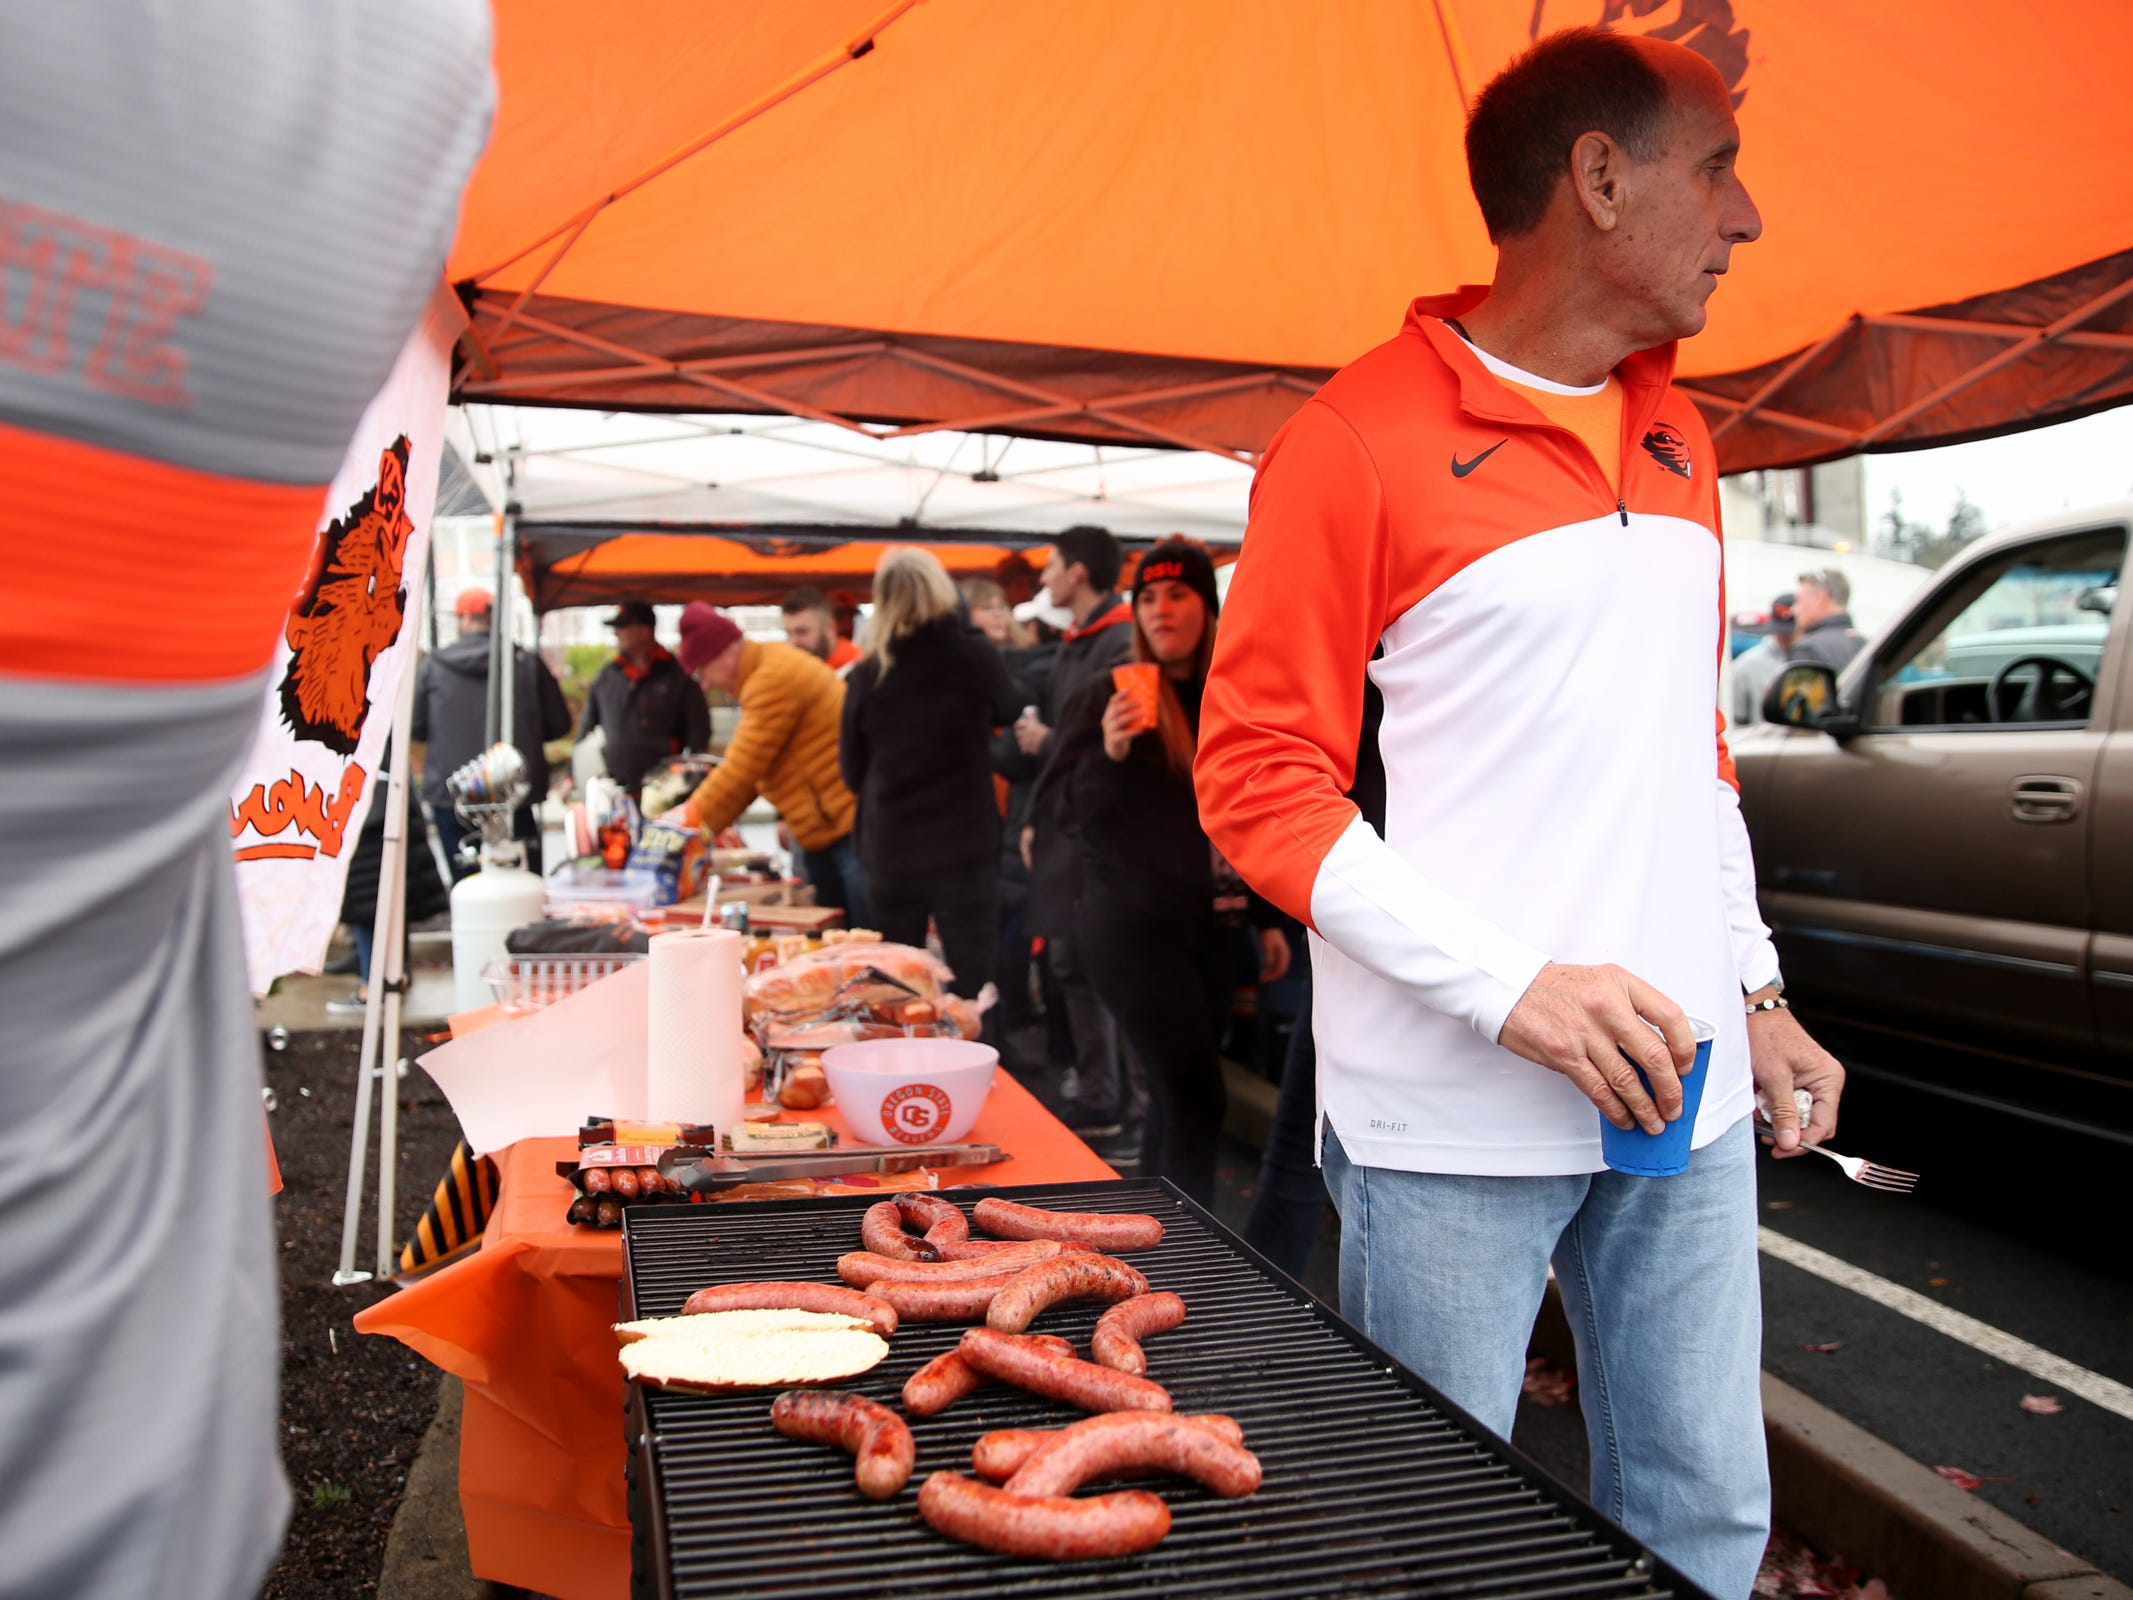 Oregon State fans tailgate before the start of the Oregon vs. Oregon State Civil war football game at Oregon State University in Corvallis on Friday, Nov. 23, 2018.